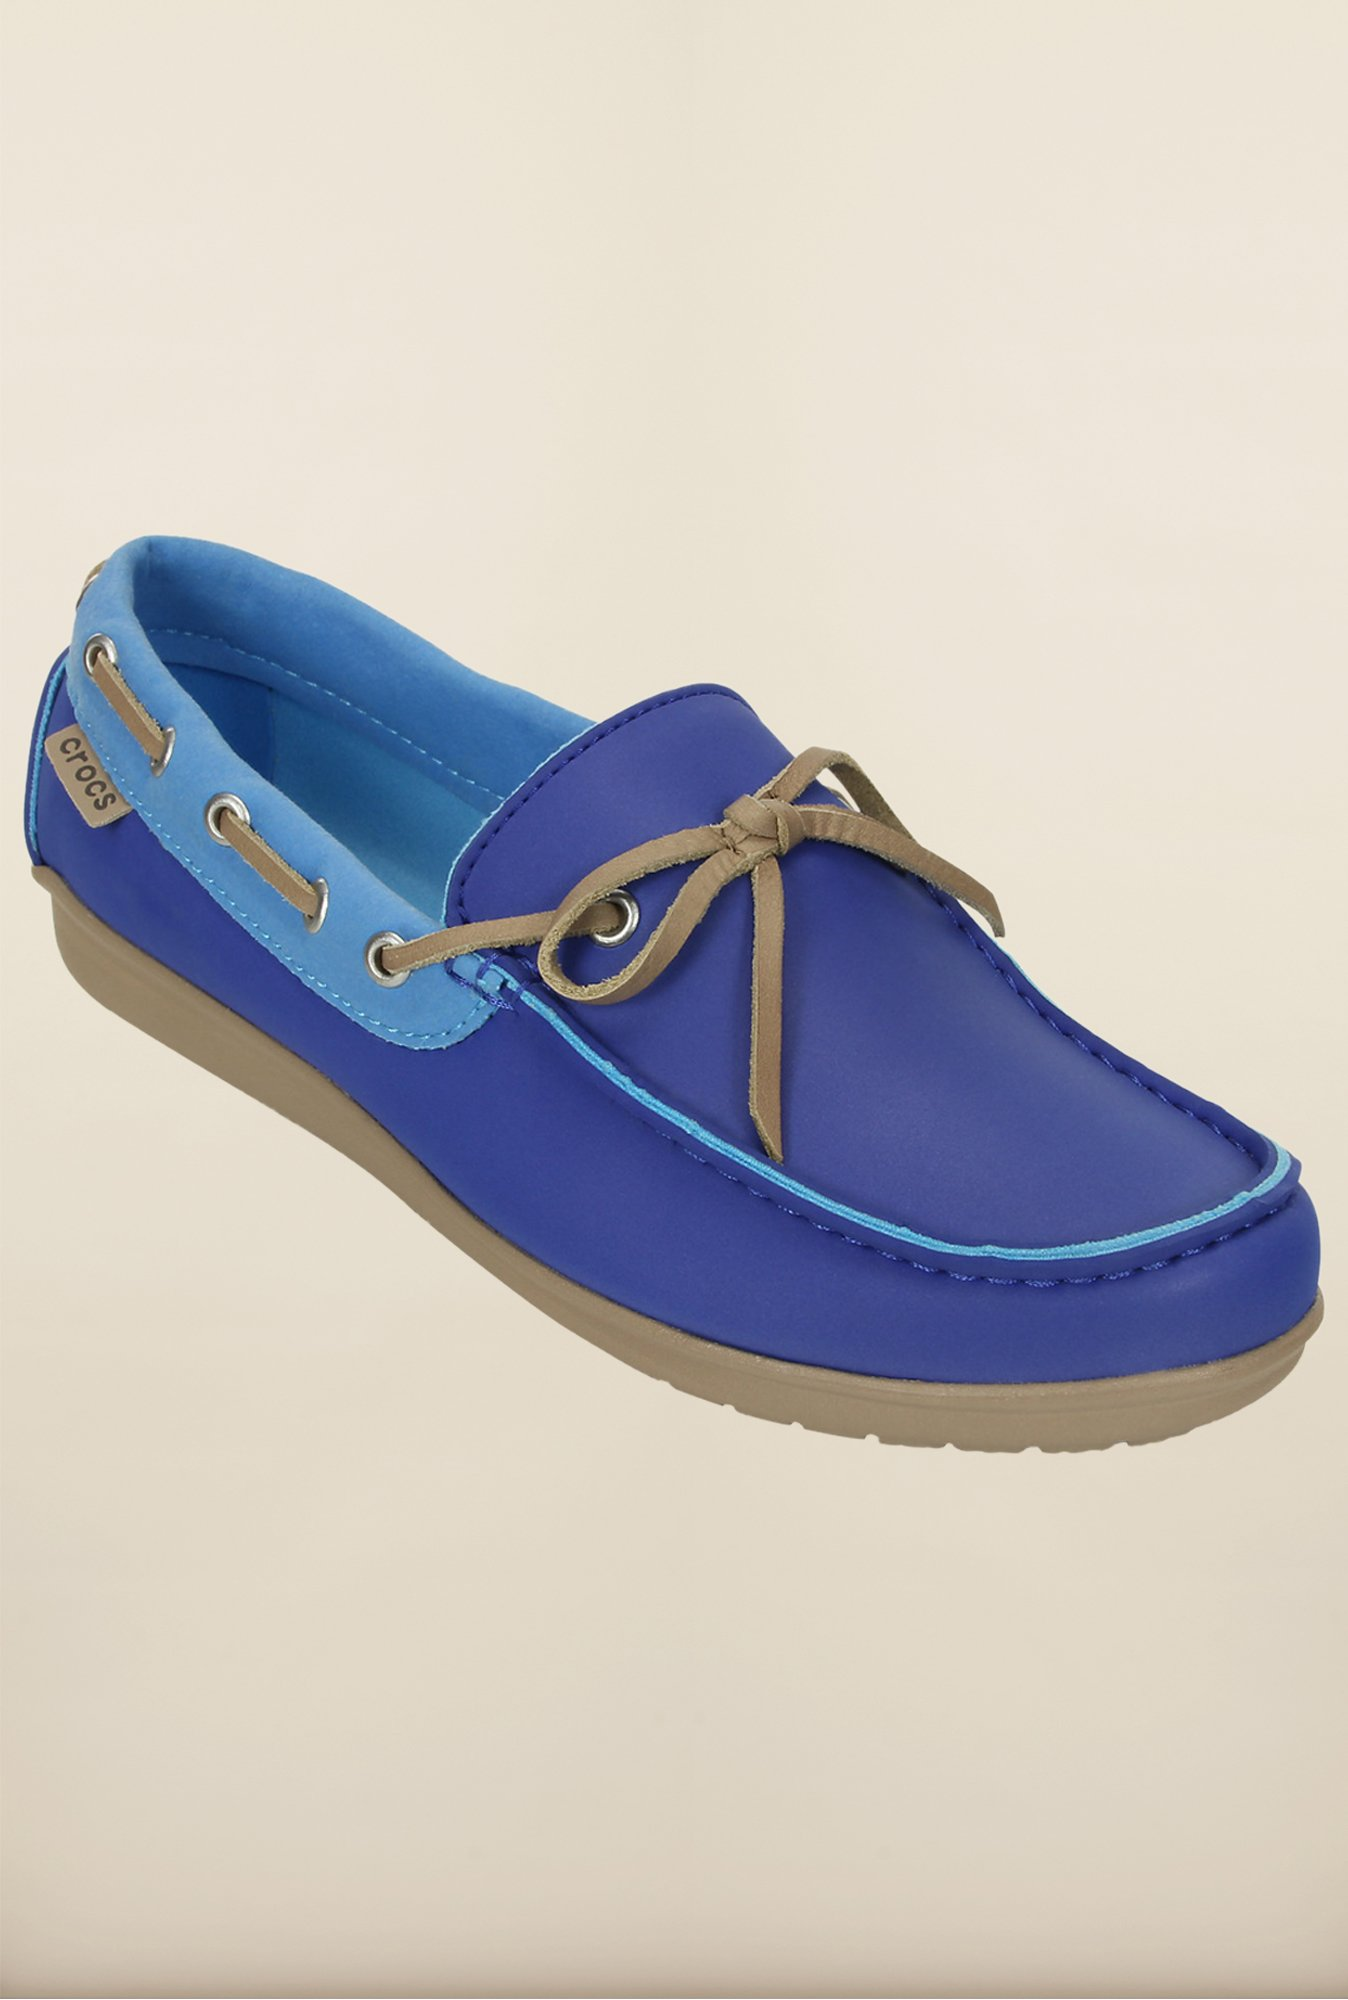 Crocs Wrap Color Lite Cerulean Blue & Bluebell Shoes